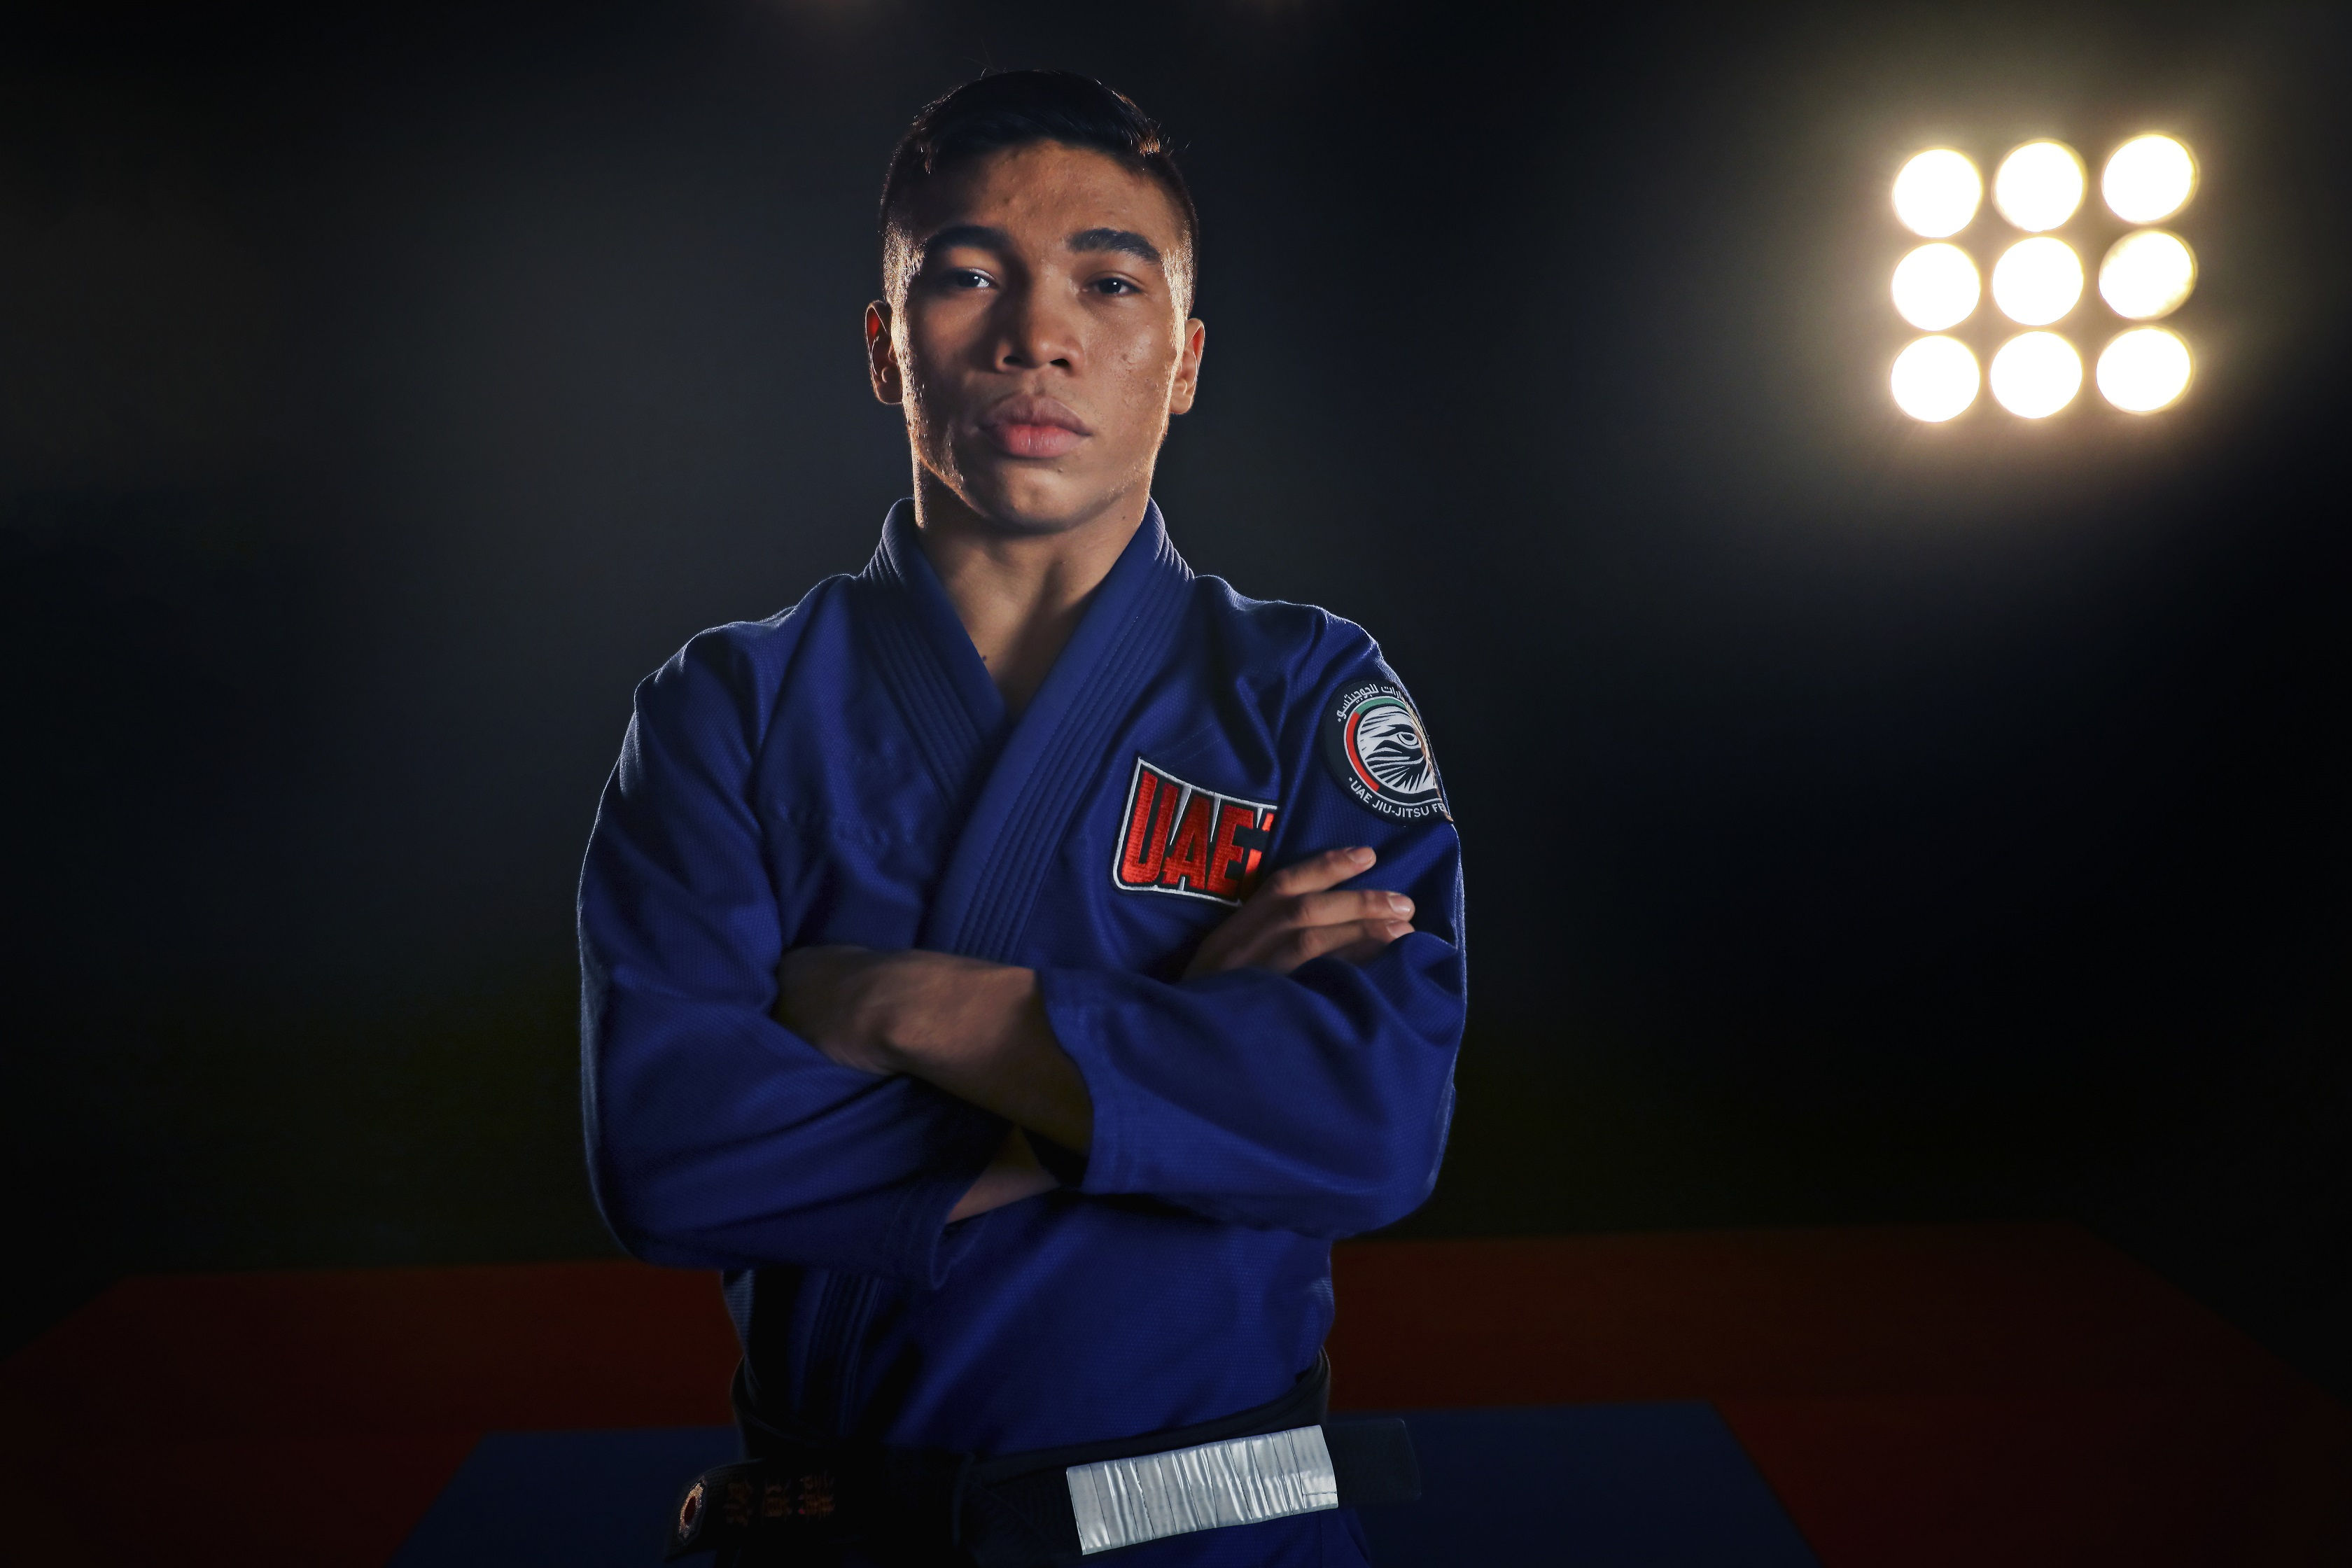 world's best jiu-jitsu heroes, local hopefuls dream of abu dhabi glory  3.jpg